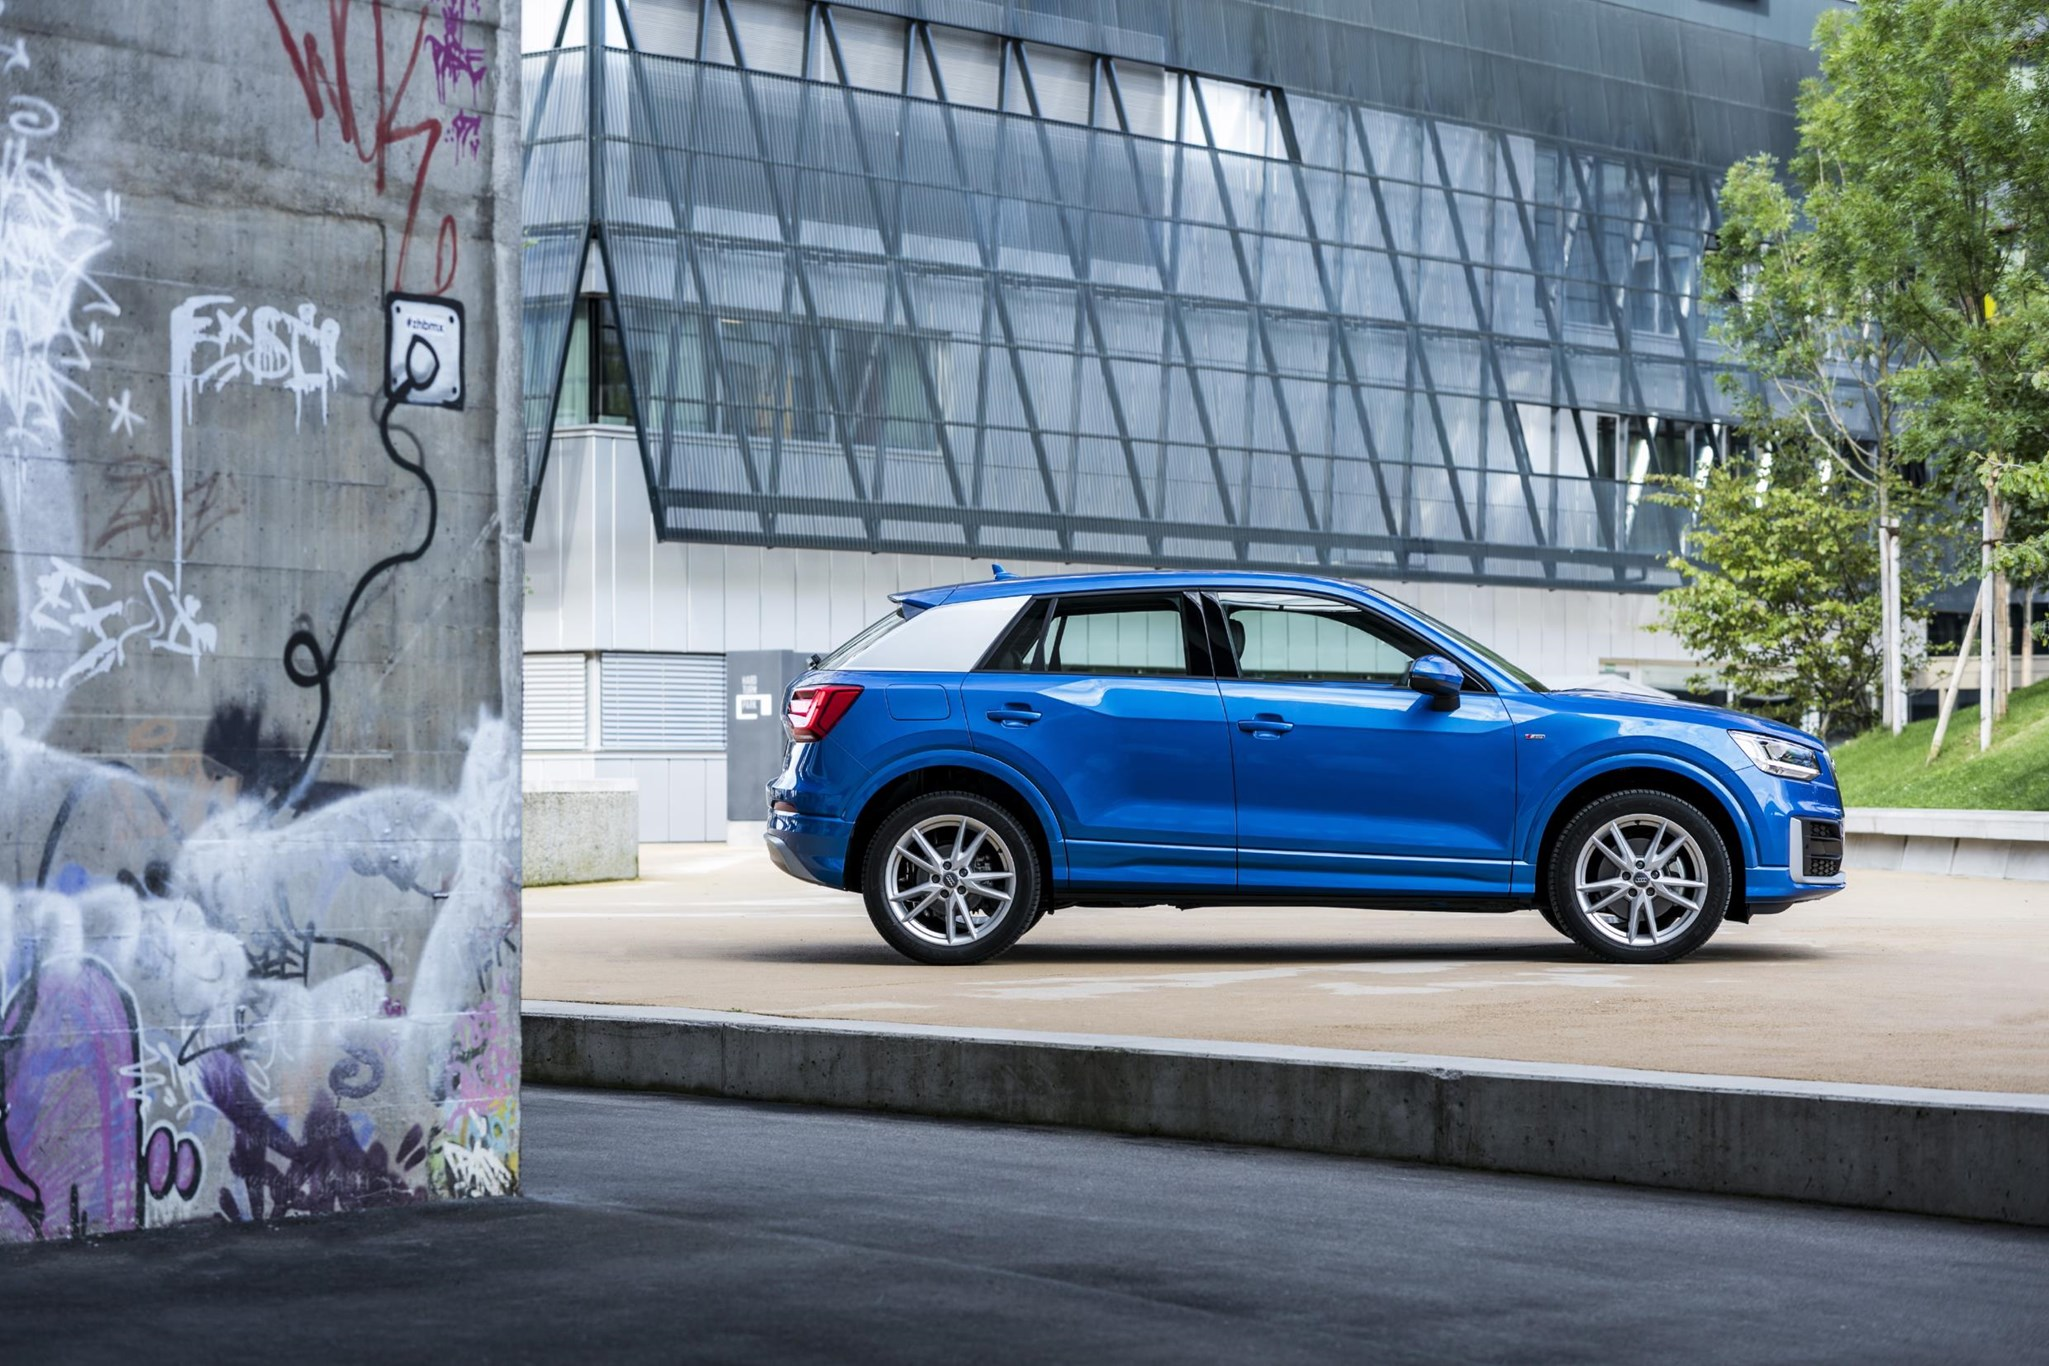 audi q2 prices announced baby crossover starts from 20k by car magazine. Black Bedroom Furniture Sets. Home Design Ideas